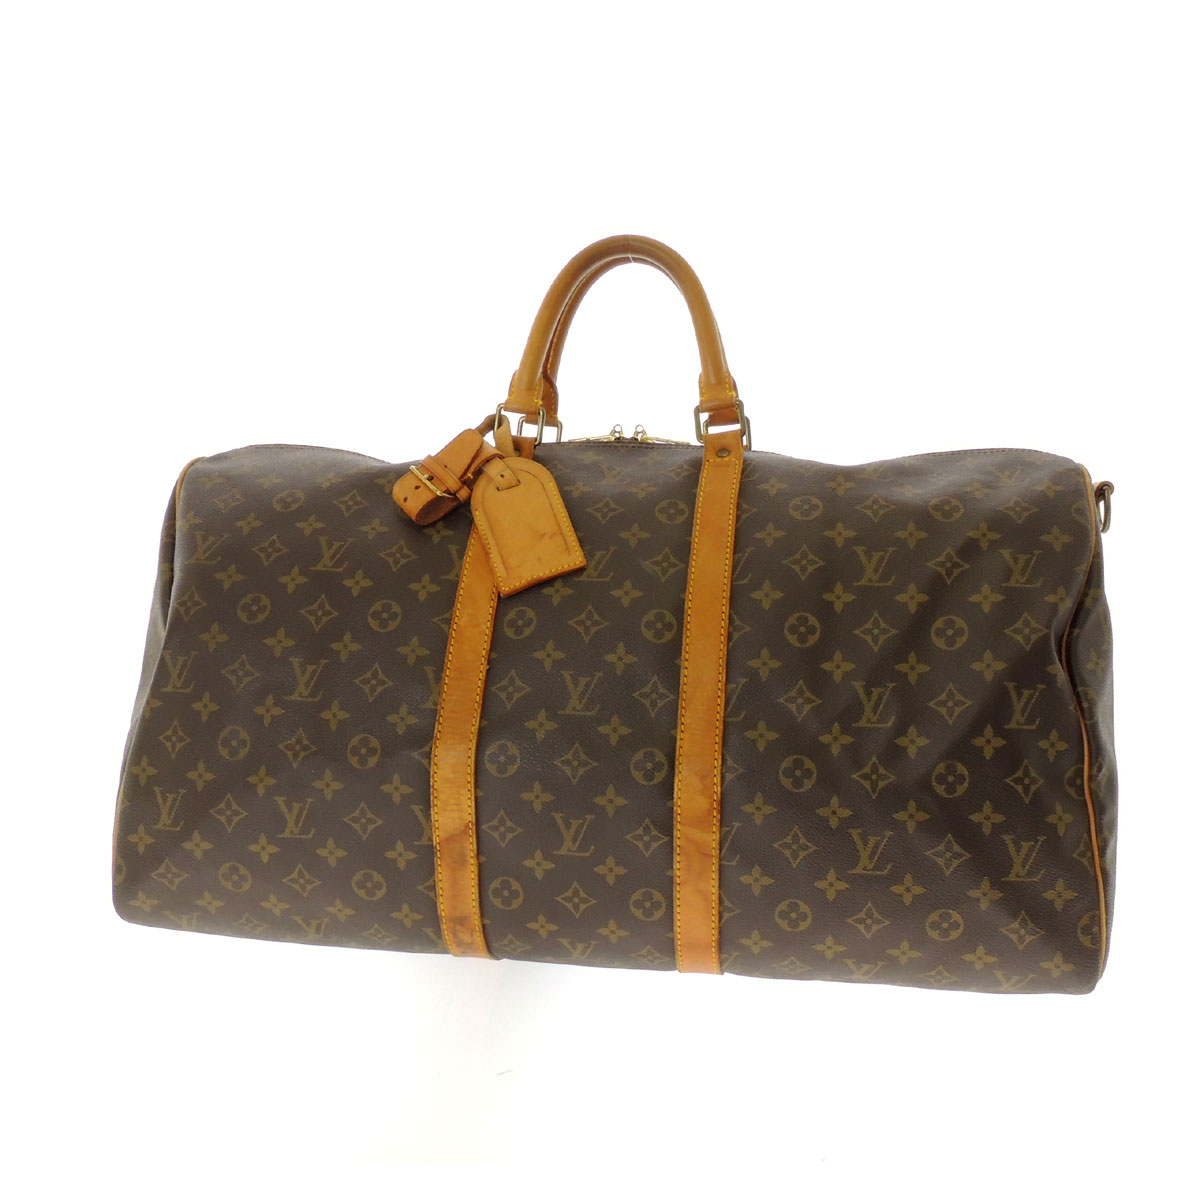 41424 LOUIS VUITTON keepall 55 with shoulder strap bag Monogram Canvas unisex